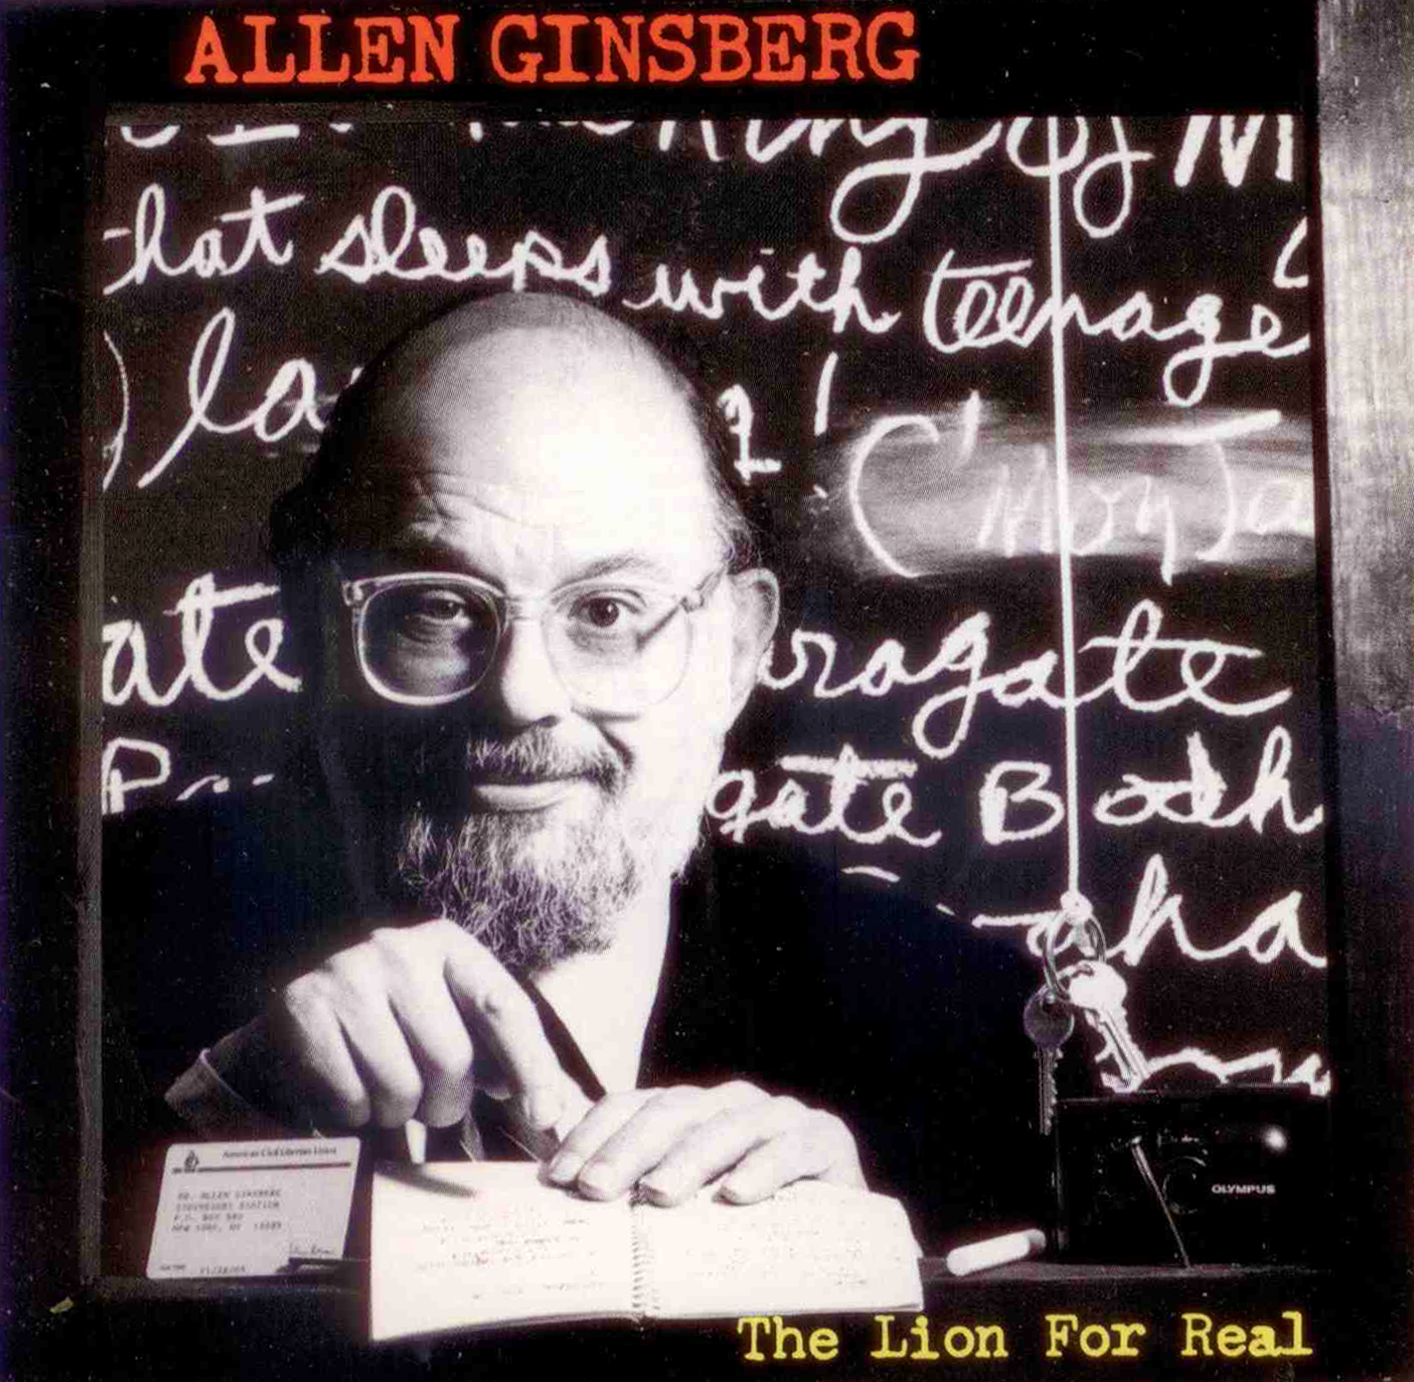 Allen Ginsberg - The Lion For Real - 1997